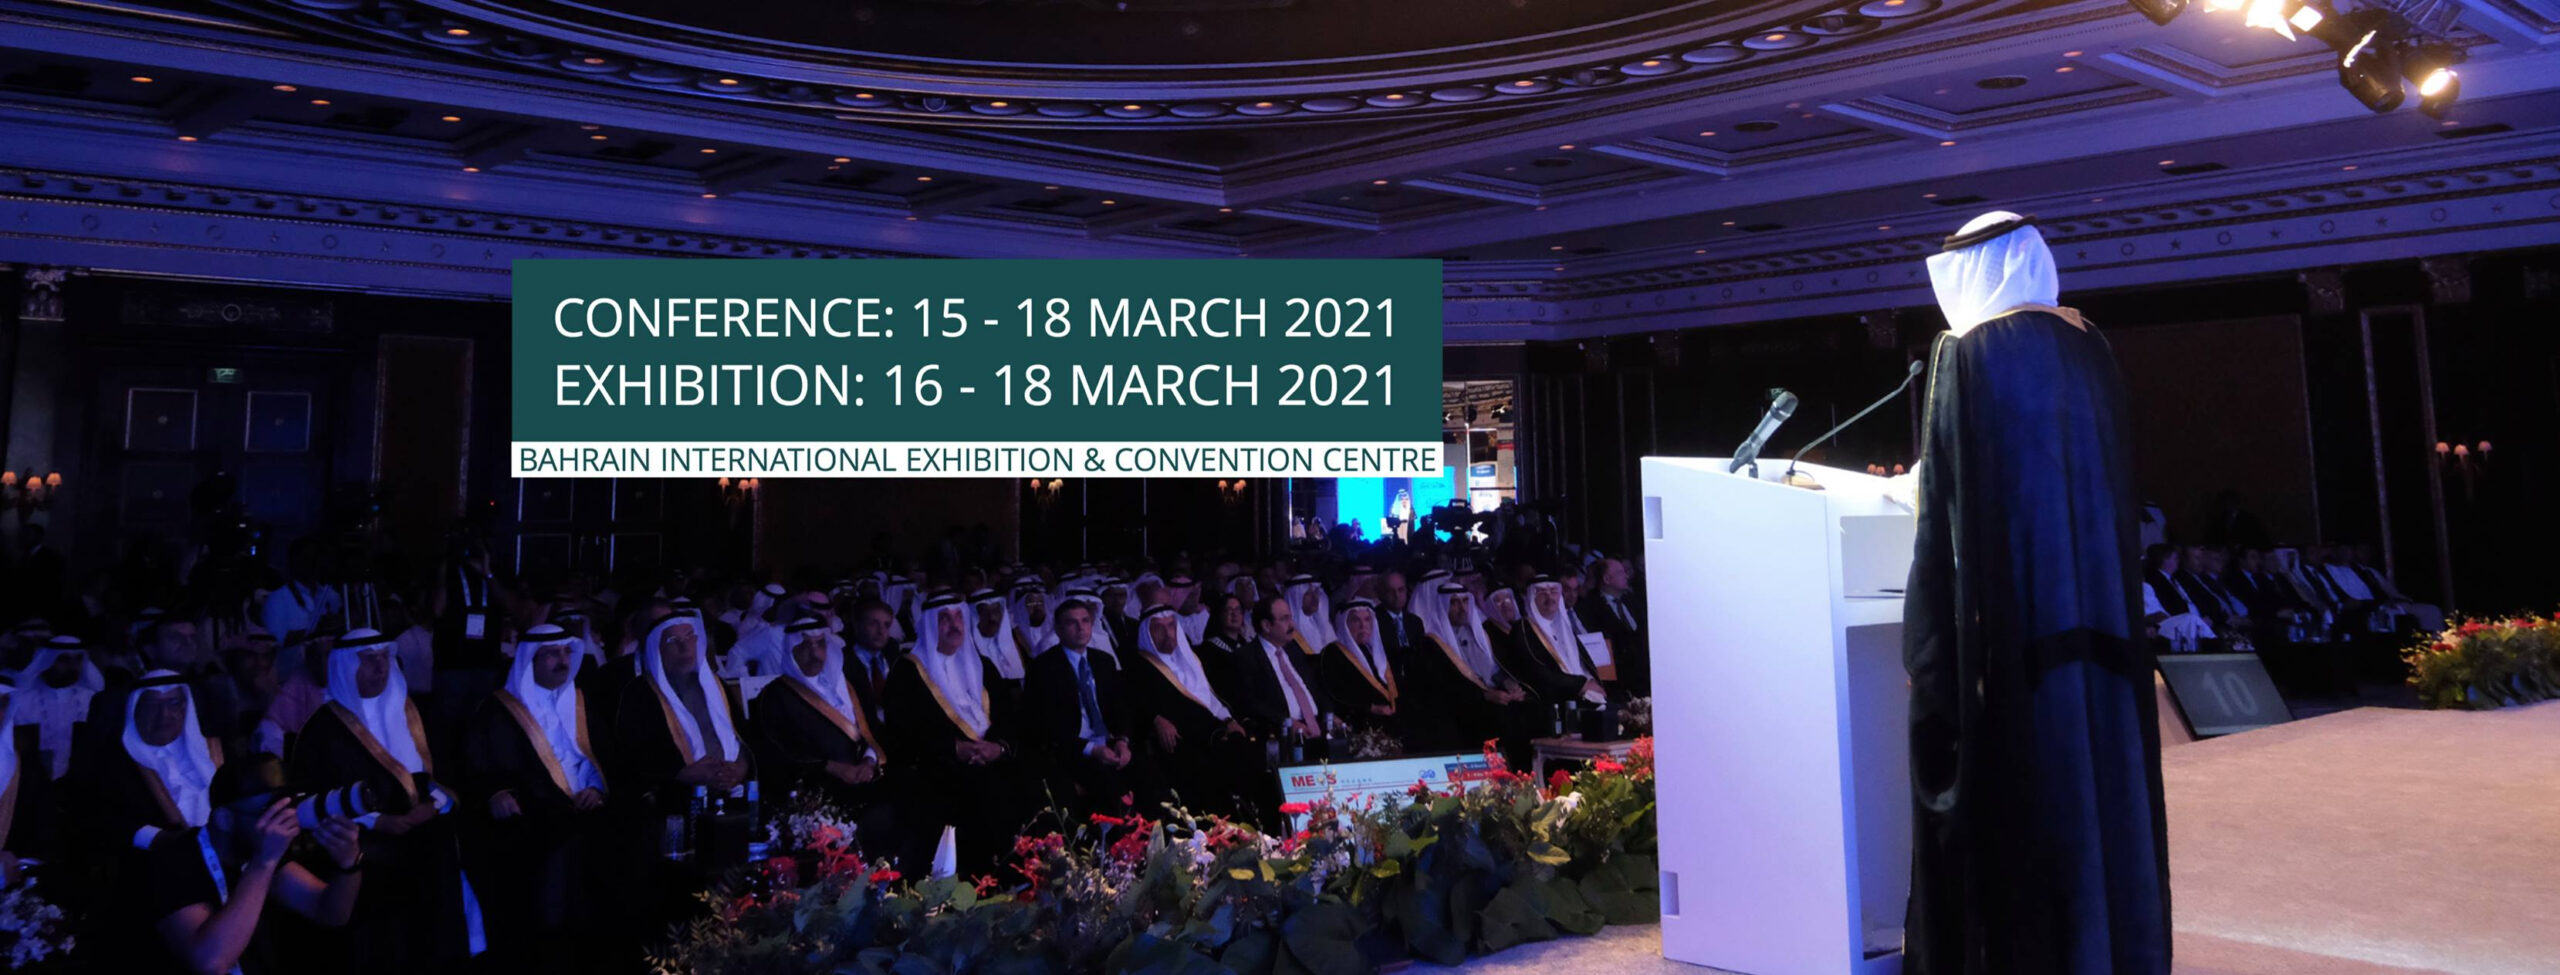 Middle East Oil & Gas Show And Conference 2021 Bahrain